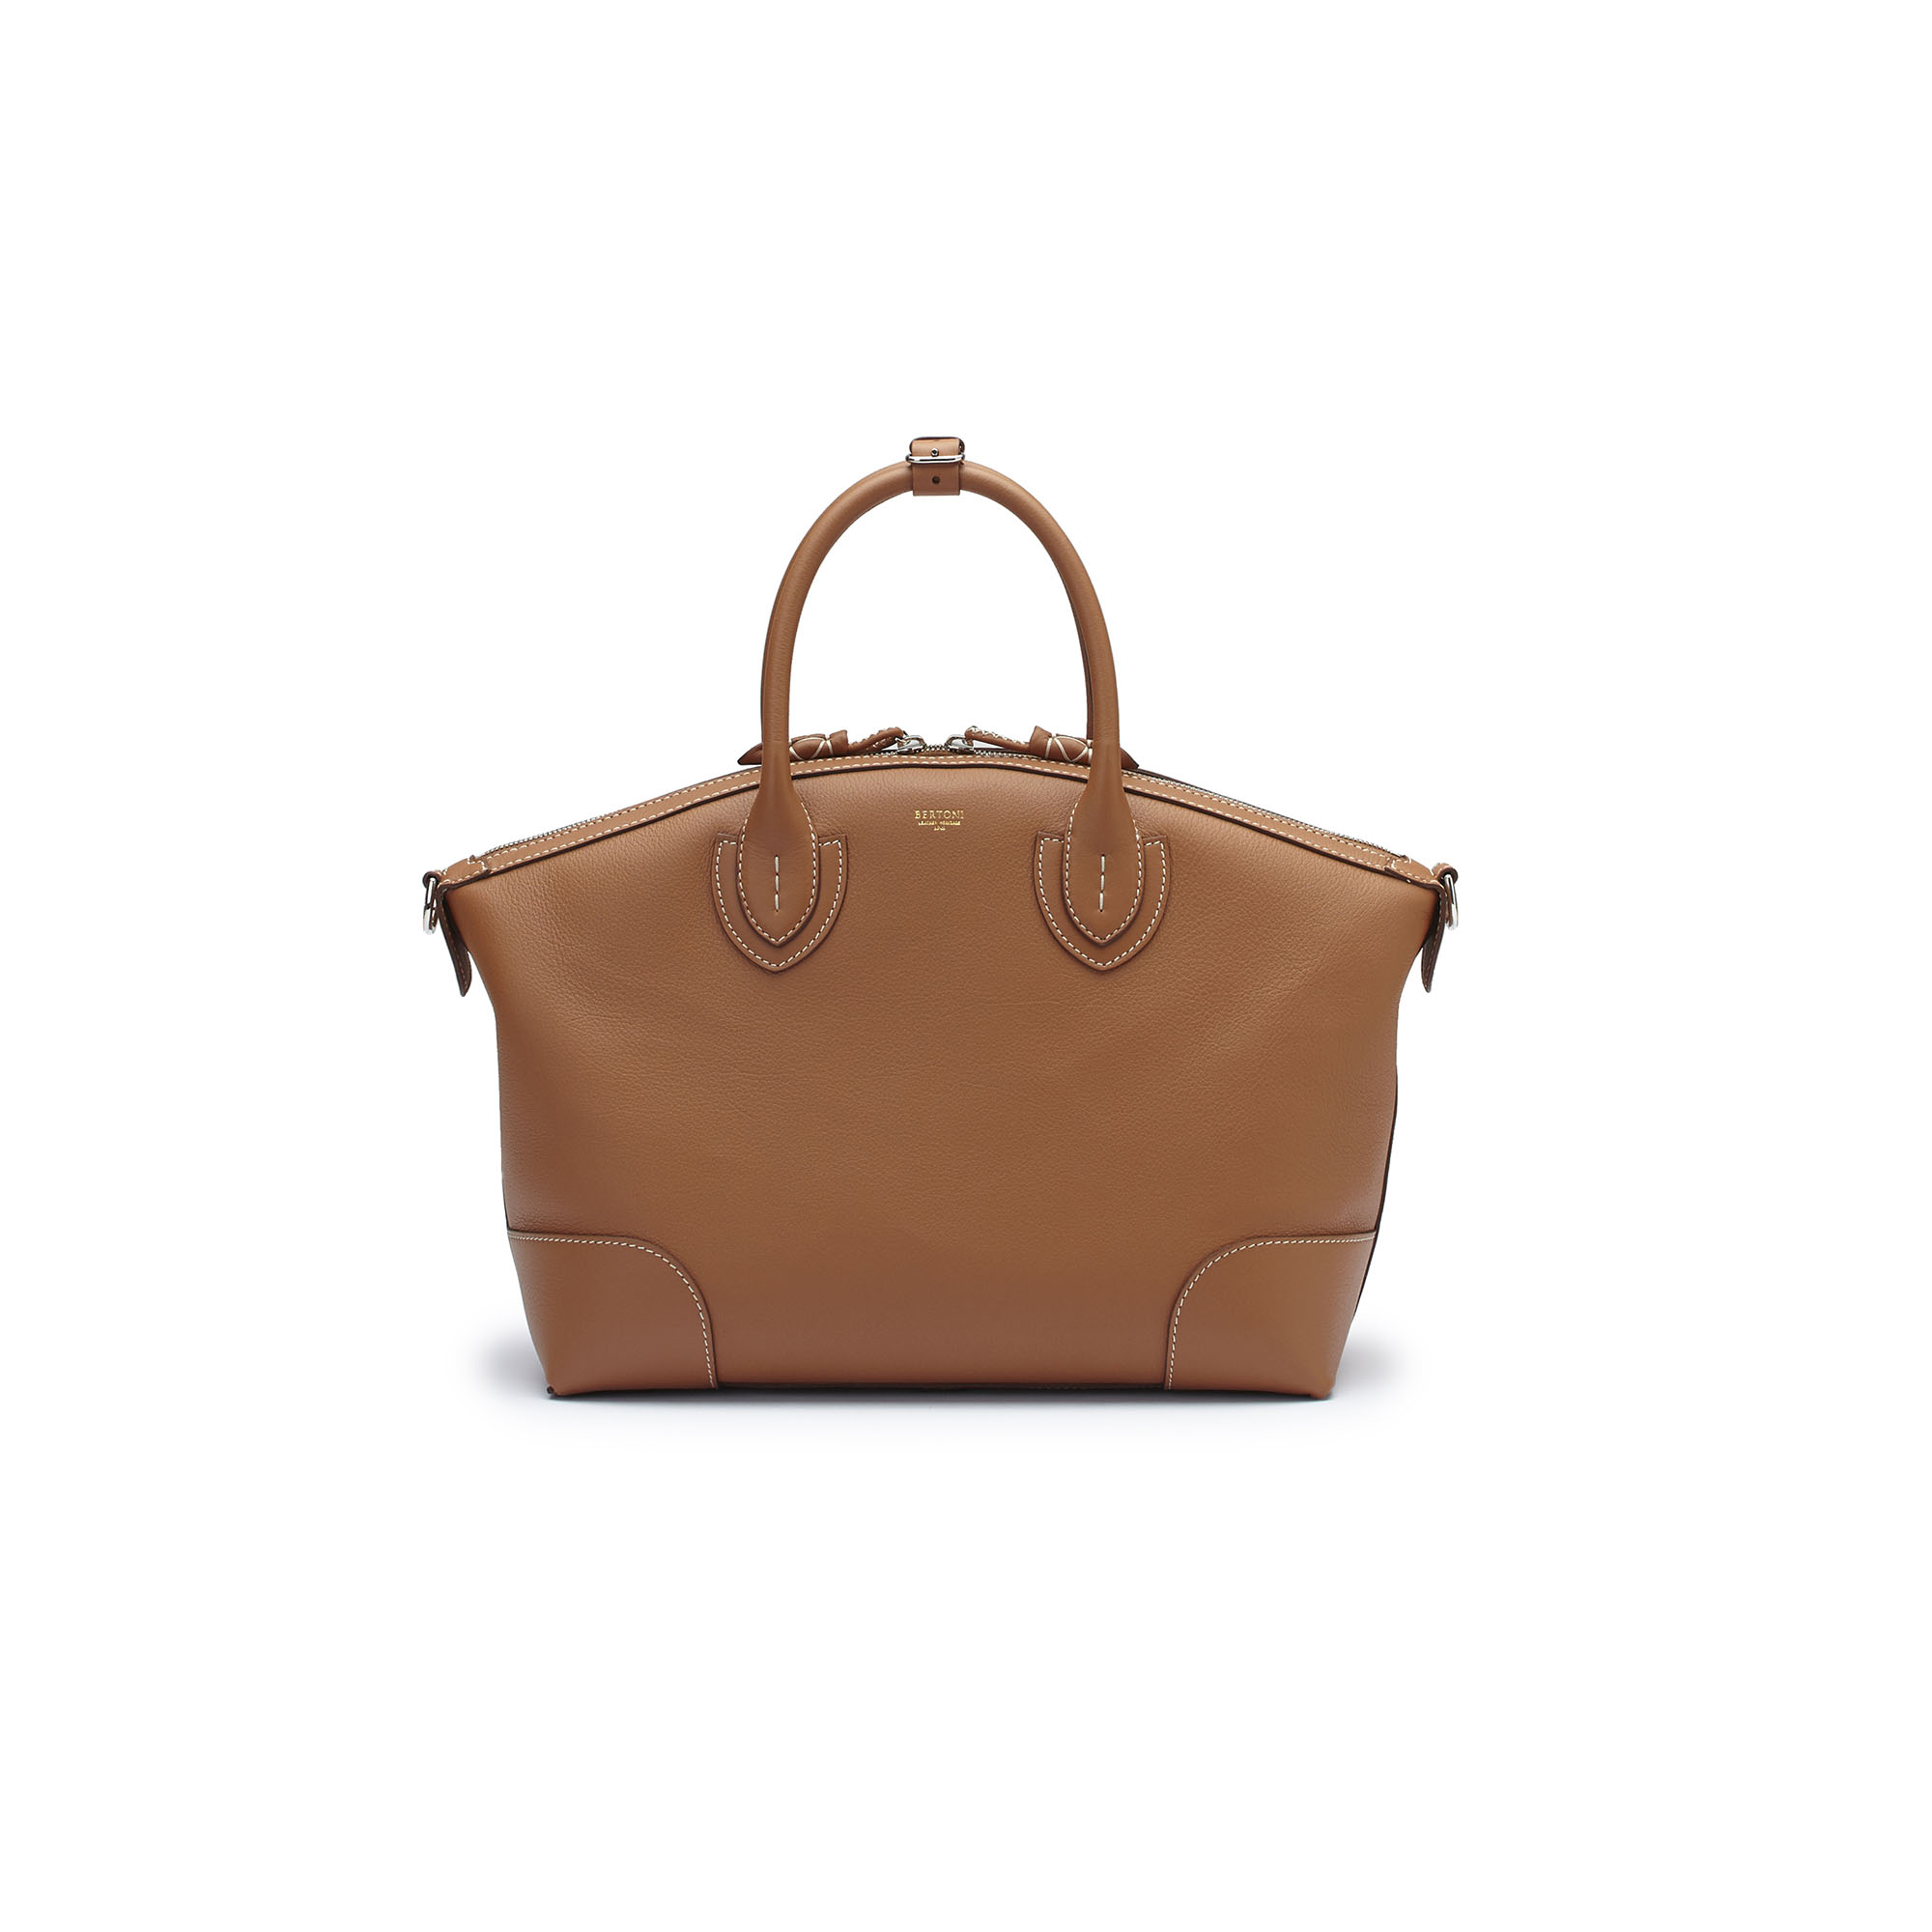 The cognac soft calf Anija bag by Bertoni 1949 01